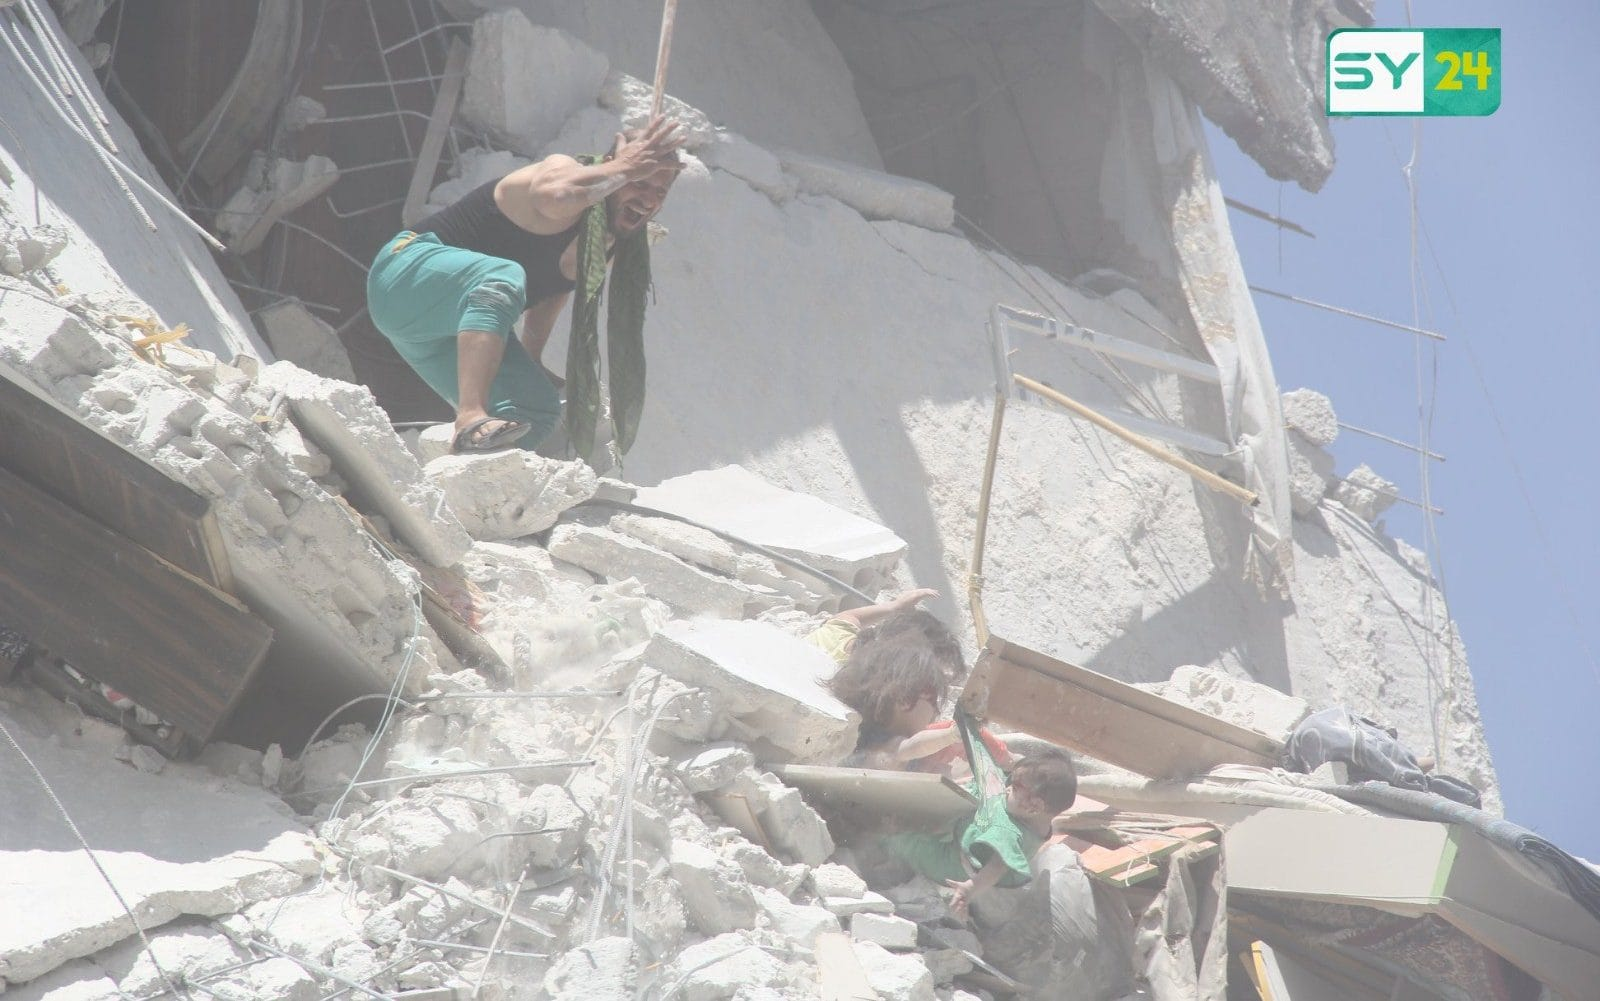 Syrian father scrambles to reach his children after airstrike in Idlib